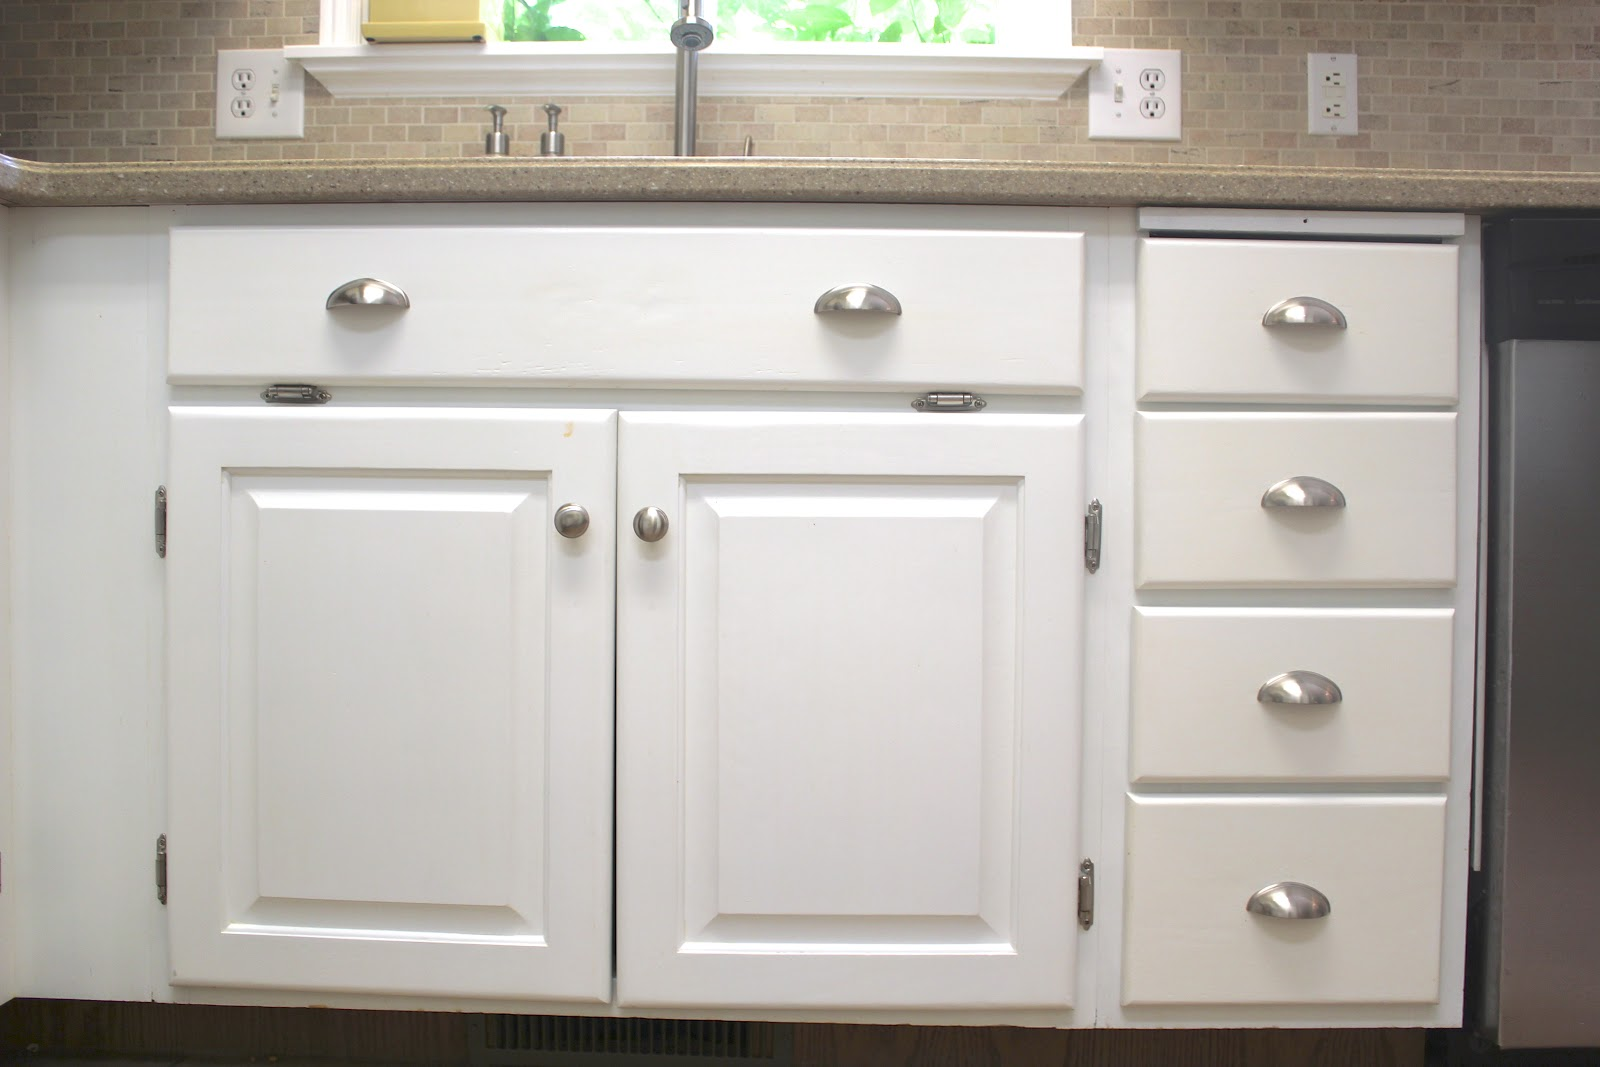 changing hinges on kitchen cabinets cheap everywhere beautiful remodel big results a